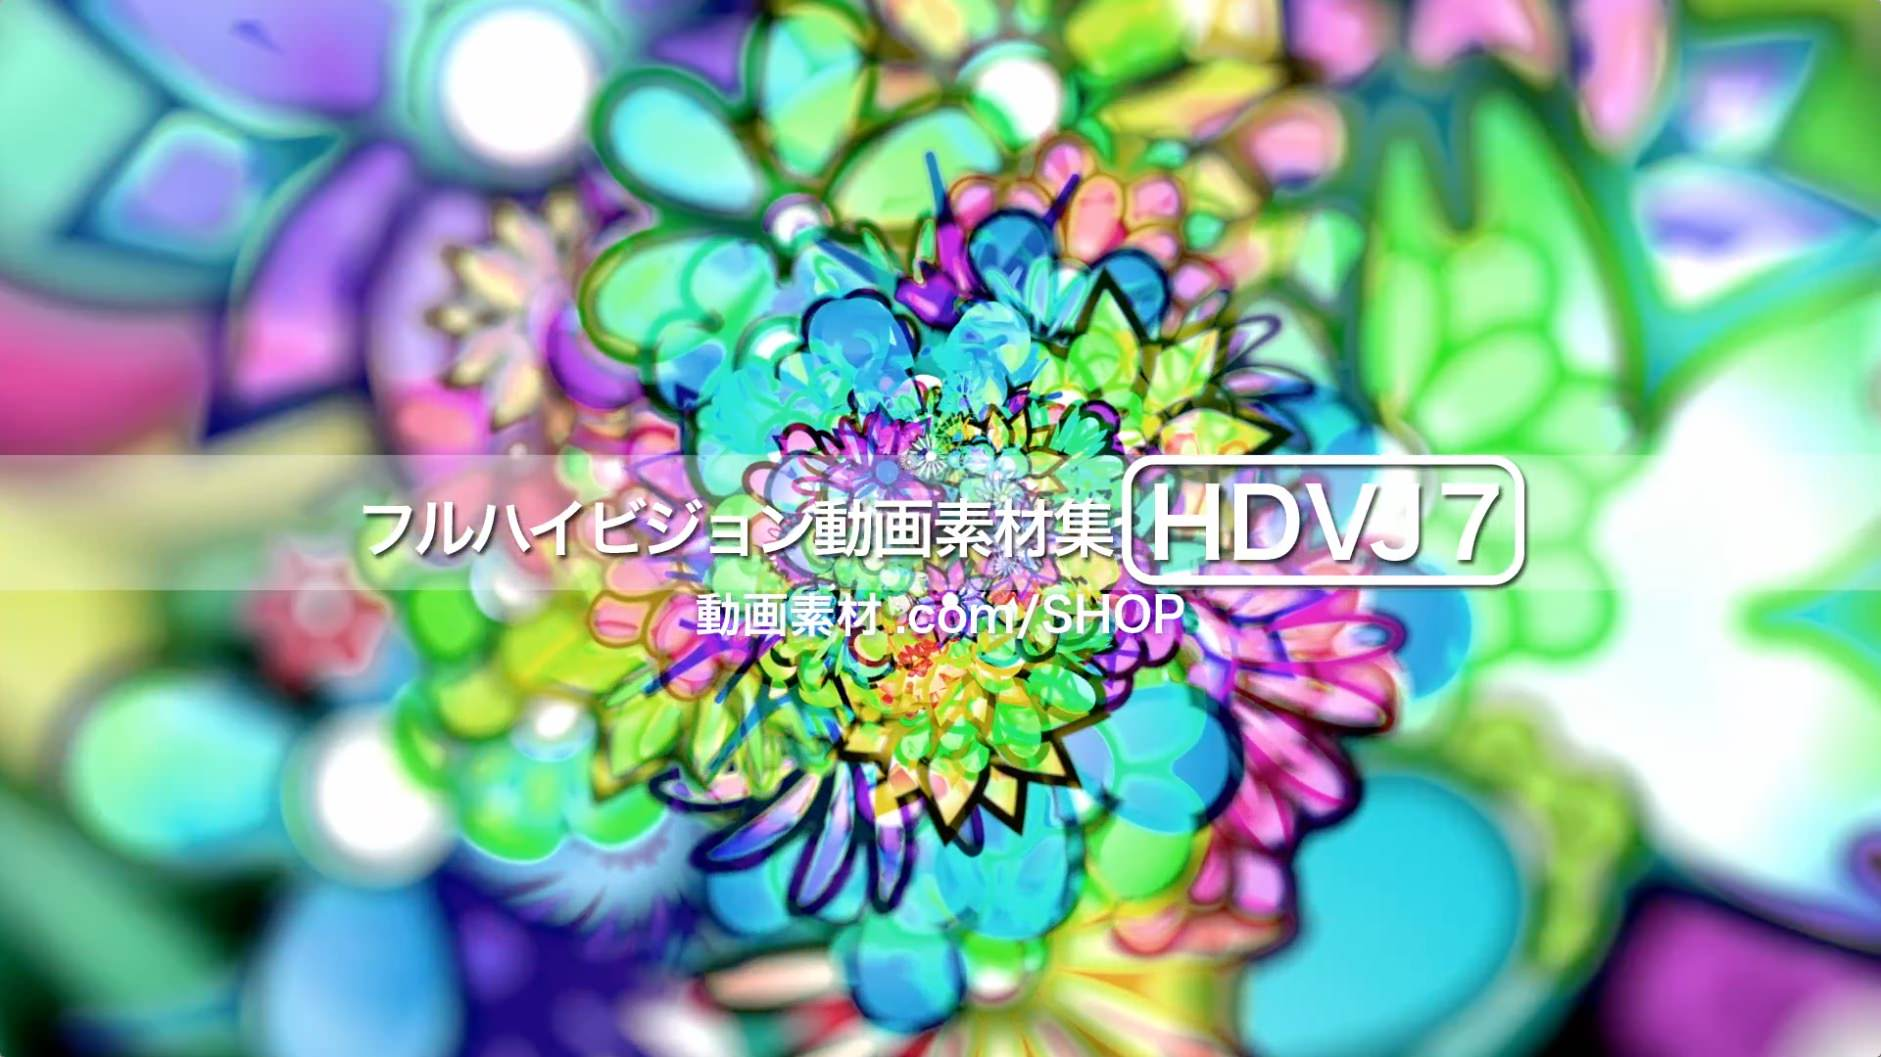 【MovieMaterial HDVJ6】フルハイビジョン動画素材集21